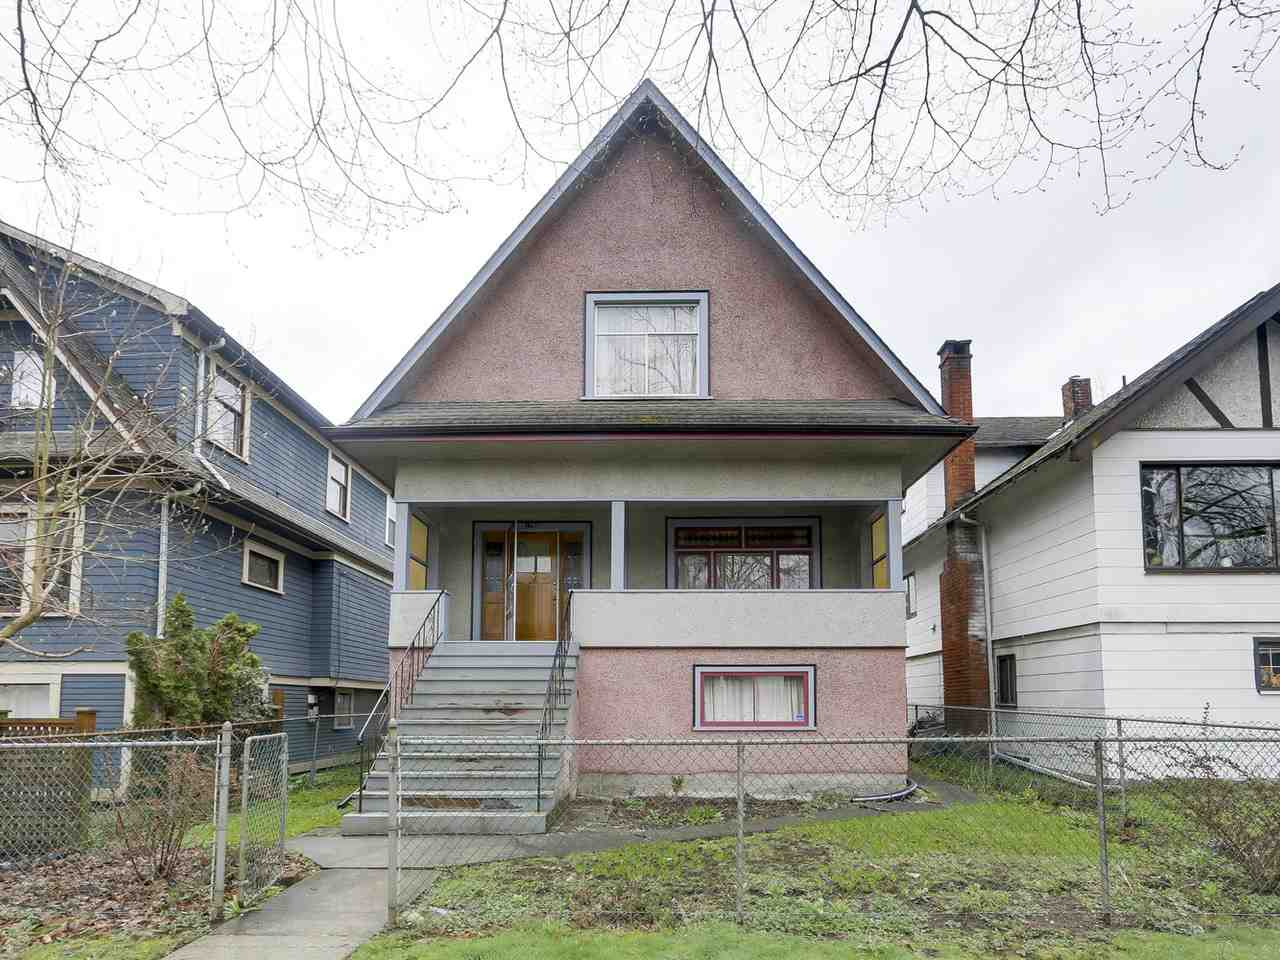 Main Photo: 1762 E 14TH Avenue in Vancouver: Grandview VE House for sale (Vancouver East)  : MLS(r) # R2156849